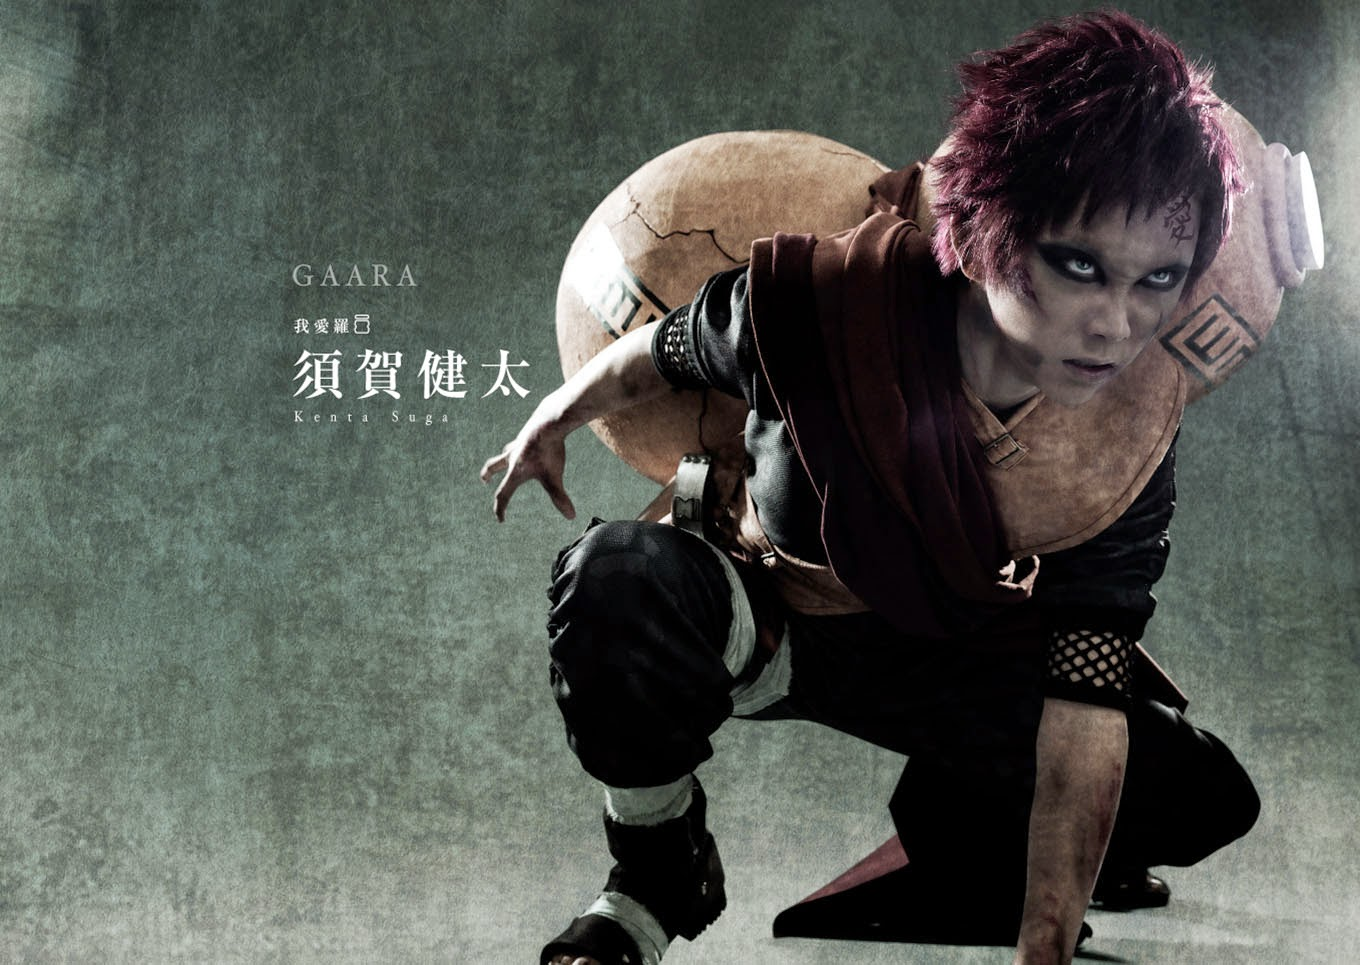 Kenta Suga As Gaara